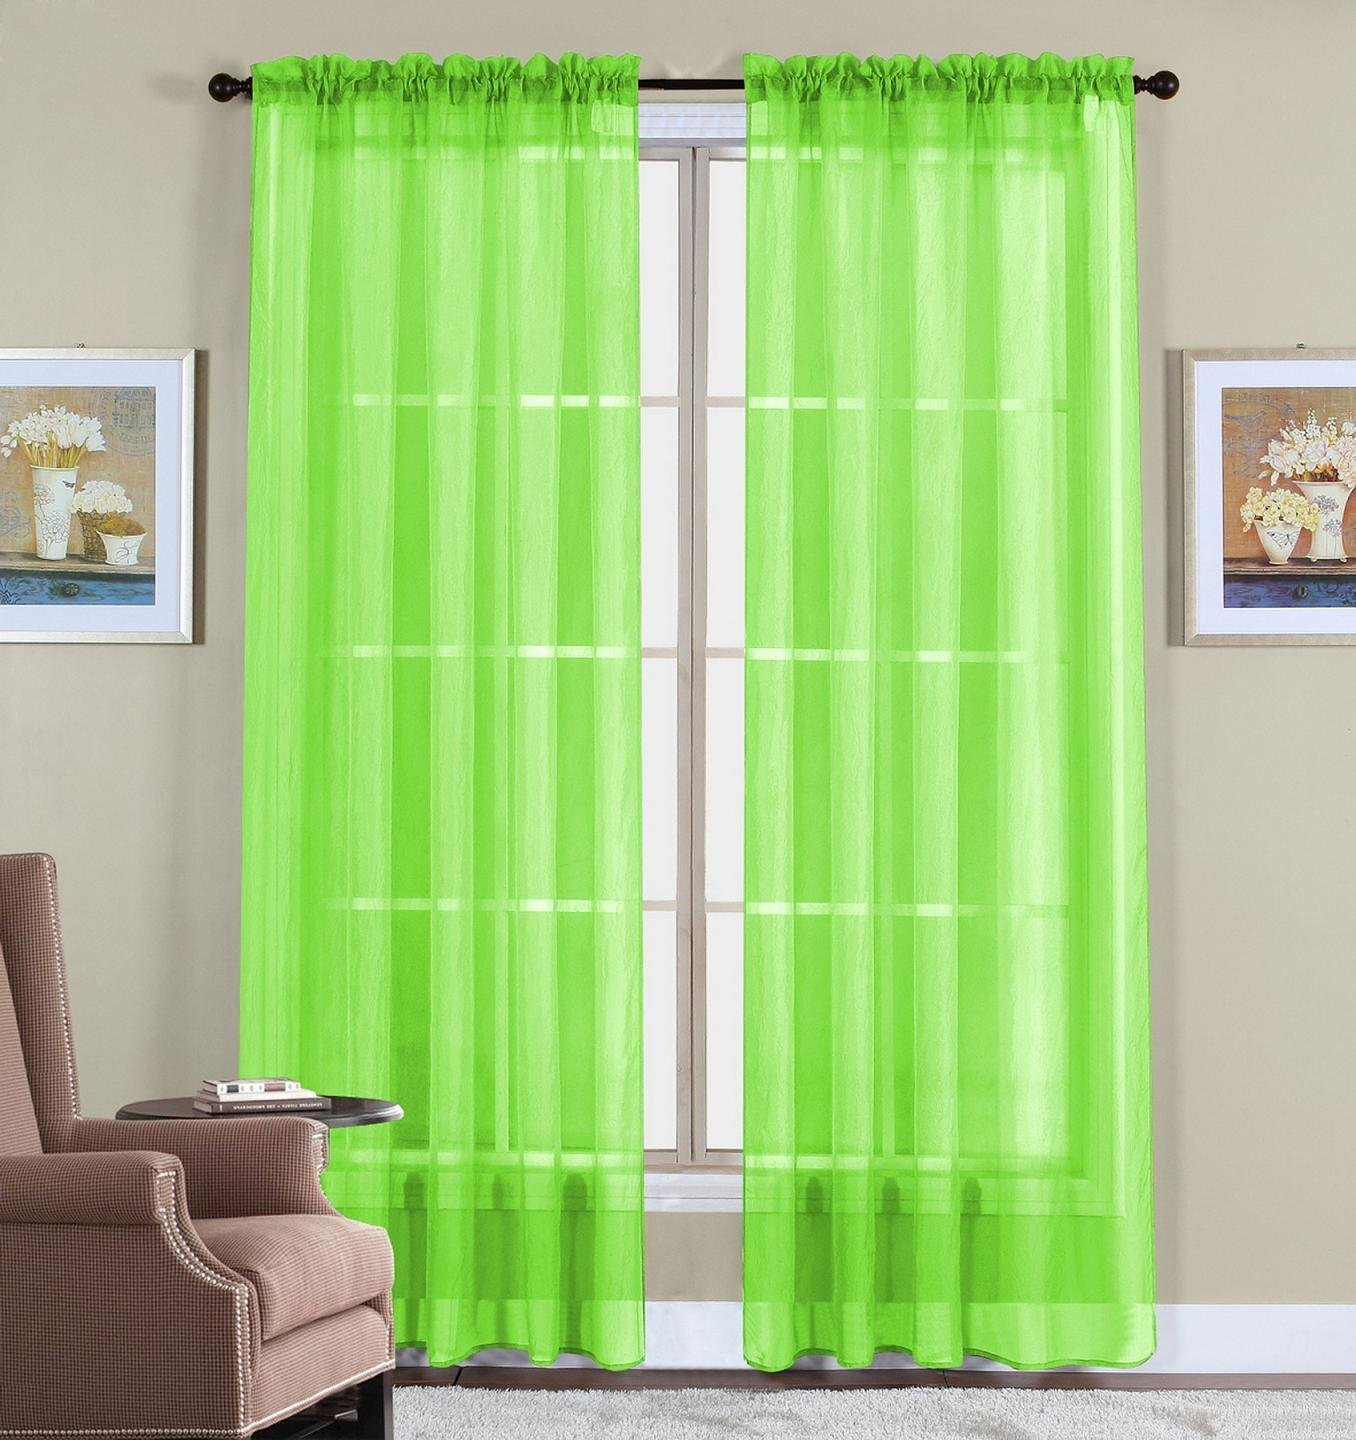 Window Elegance Curtains/drape/panels/treatment, Lime Green